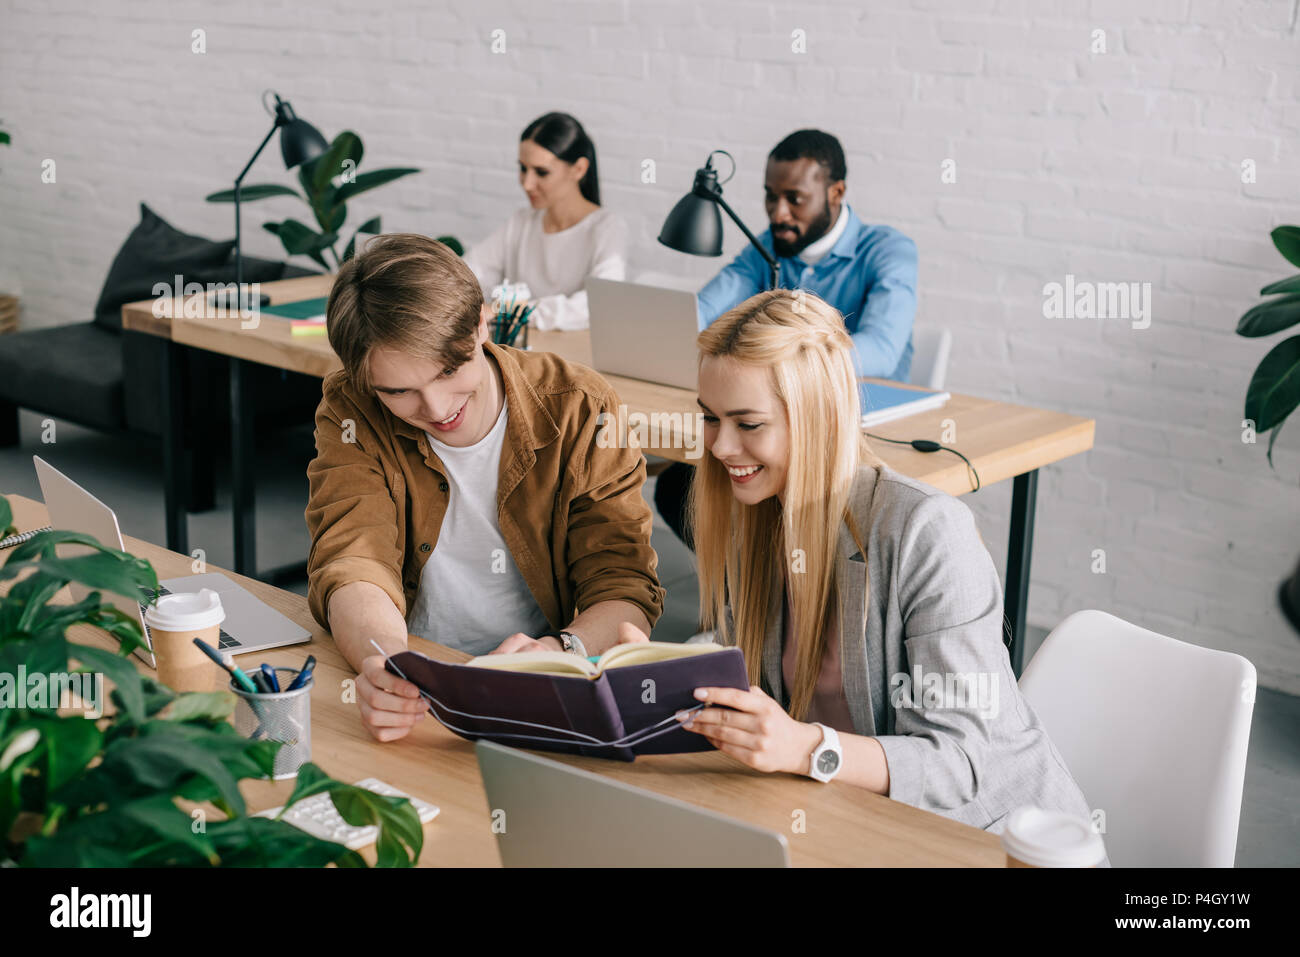 smiling business partners watching on textbook and colleagues sitting behind in office - Stock Image